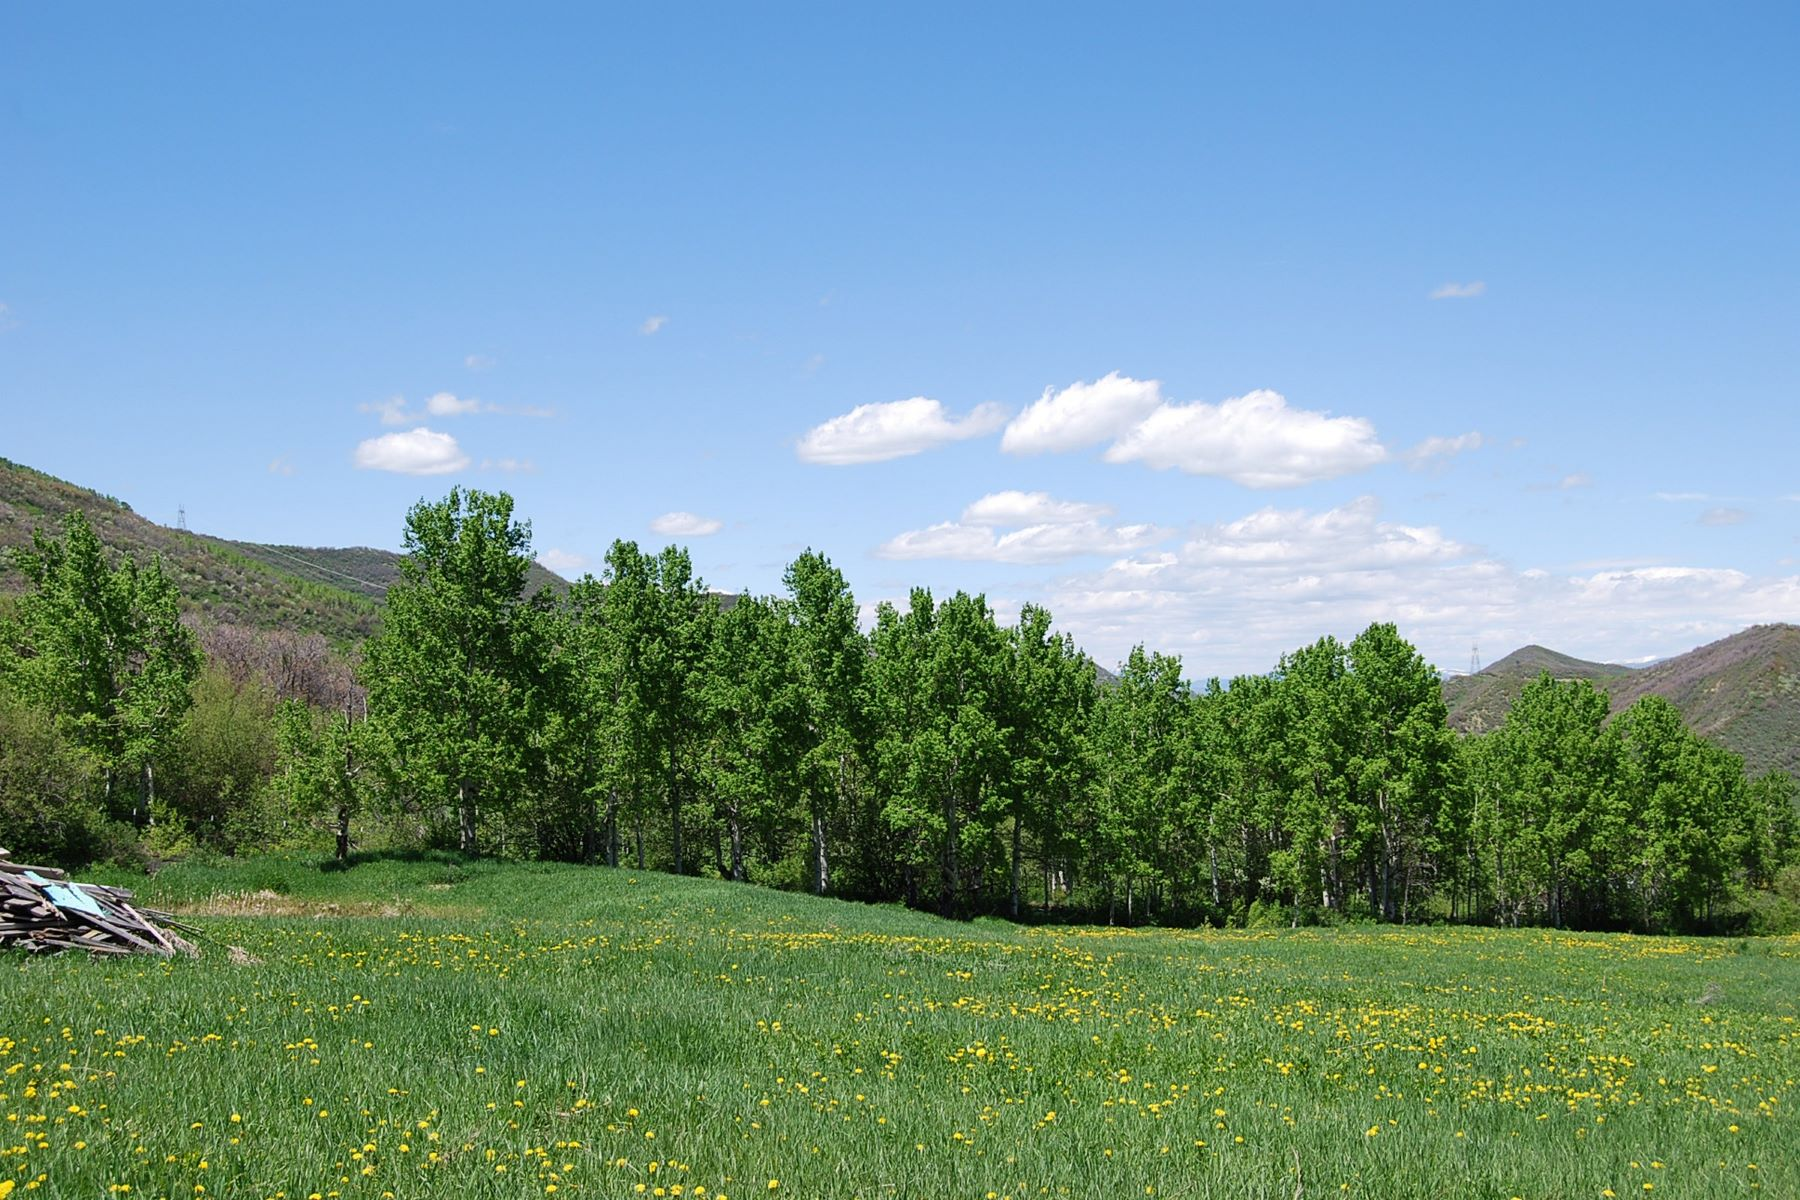 Additional photo for property listing at 2 Acre Lot in Oak Creek 24253 County Road 49Z Oak Creek, Colorado 80467 United States